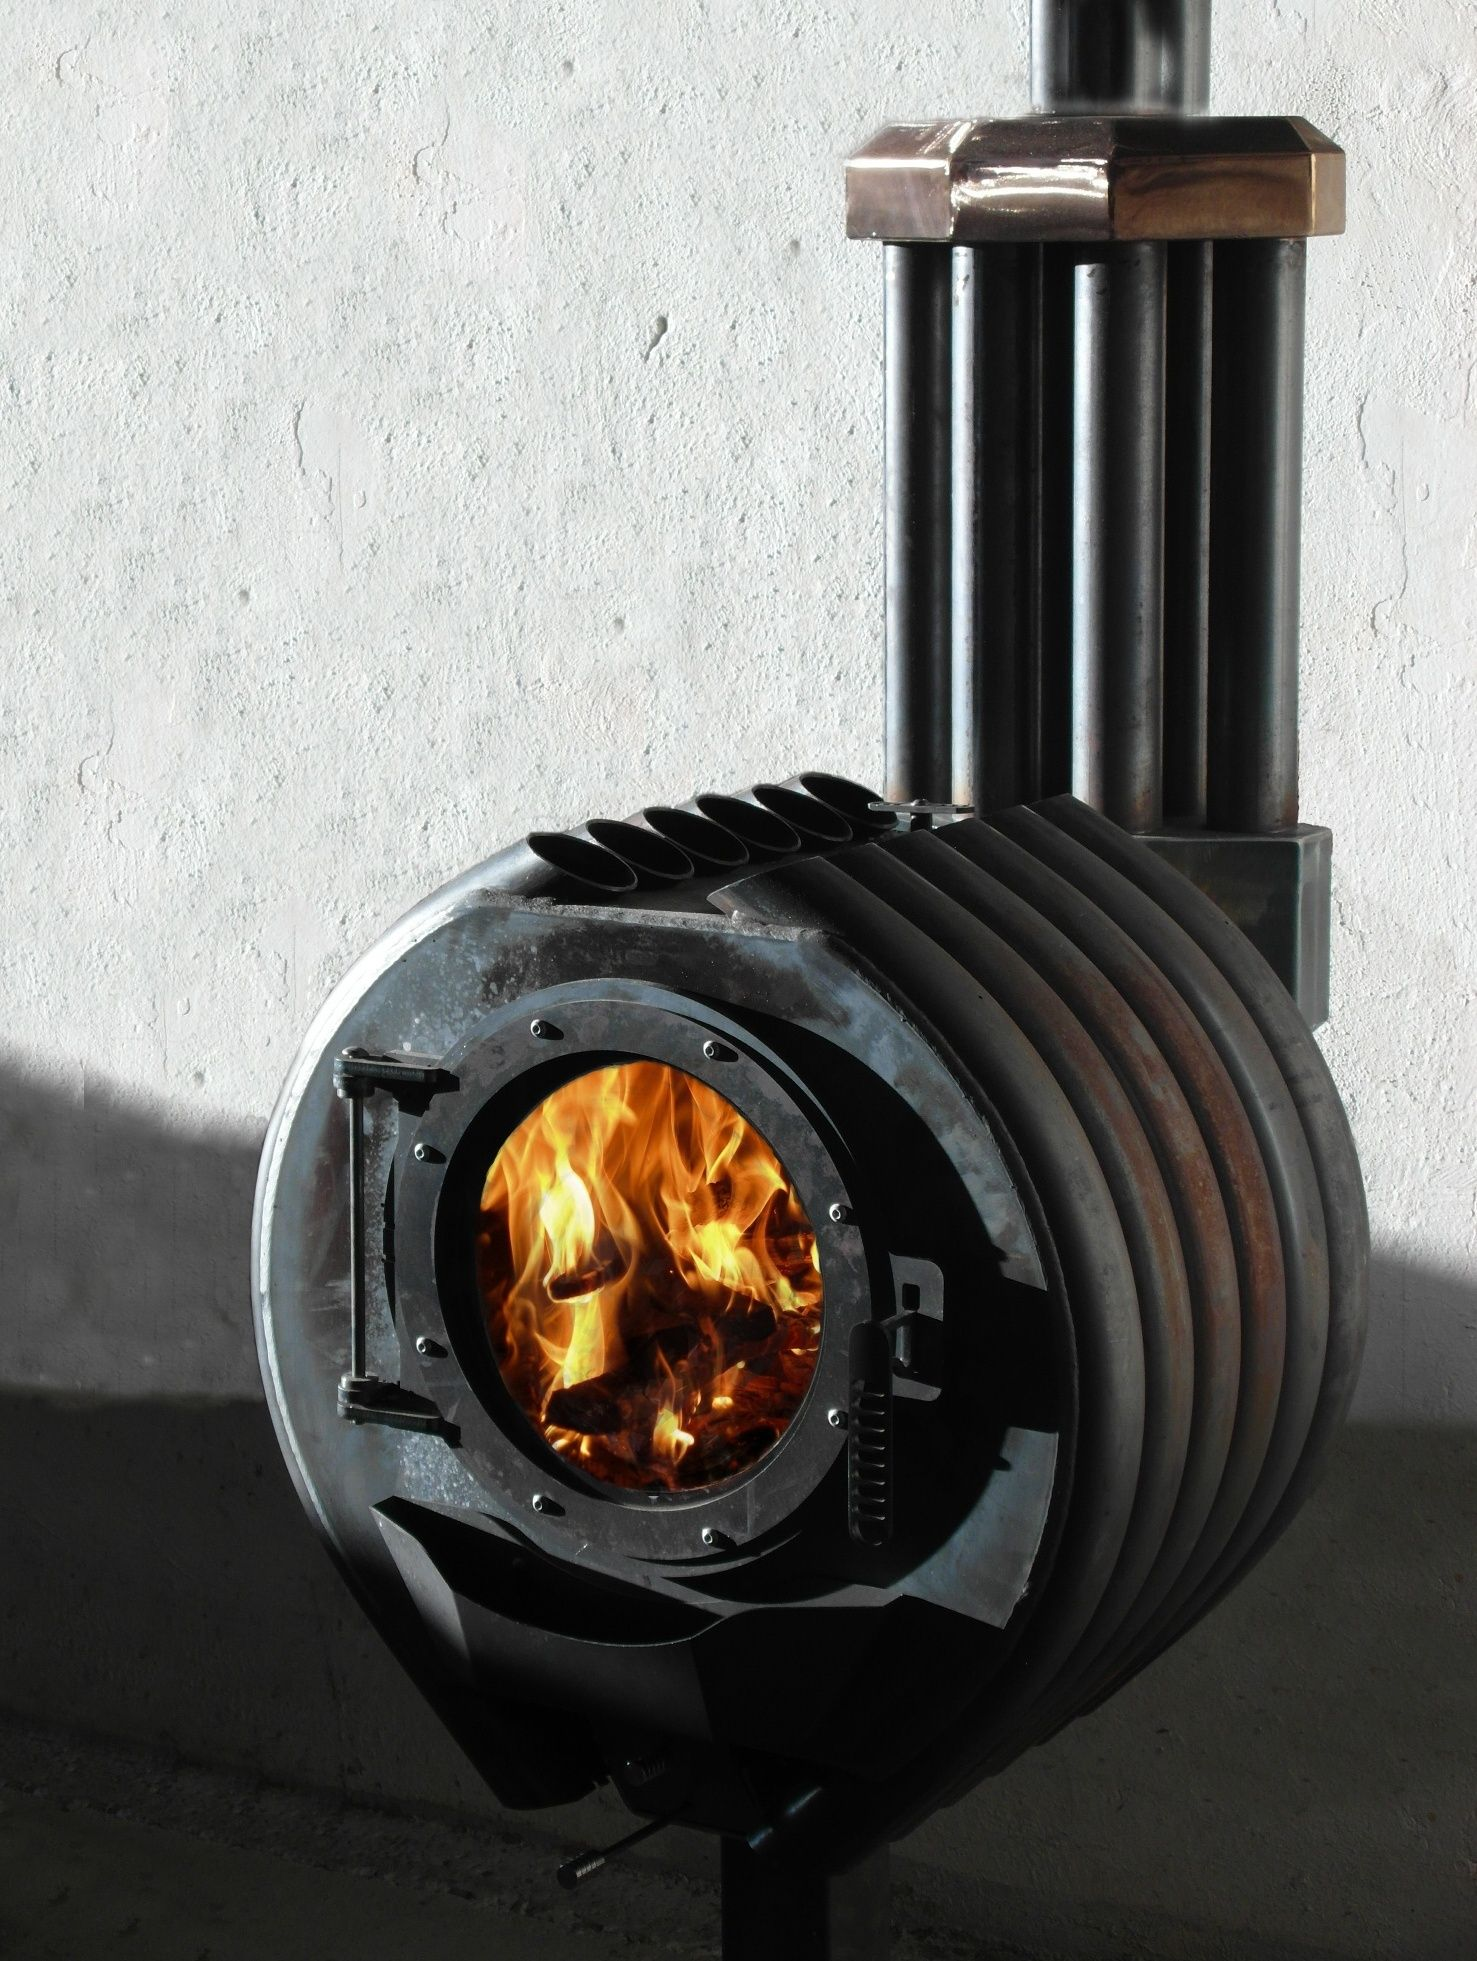 Stoves Bulyfire Wood Heater Rocket Stoves Fire Pit Cooking